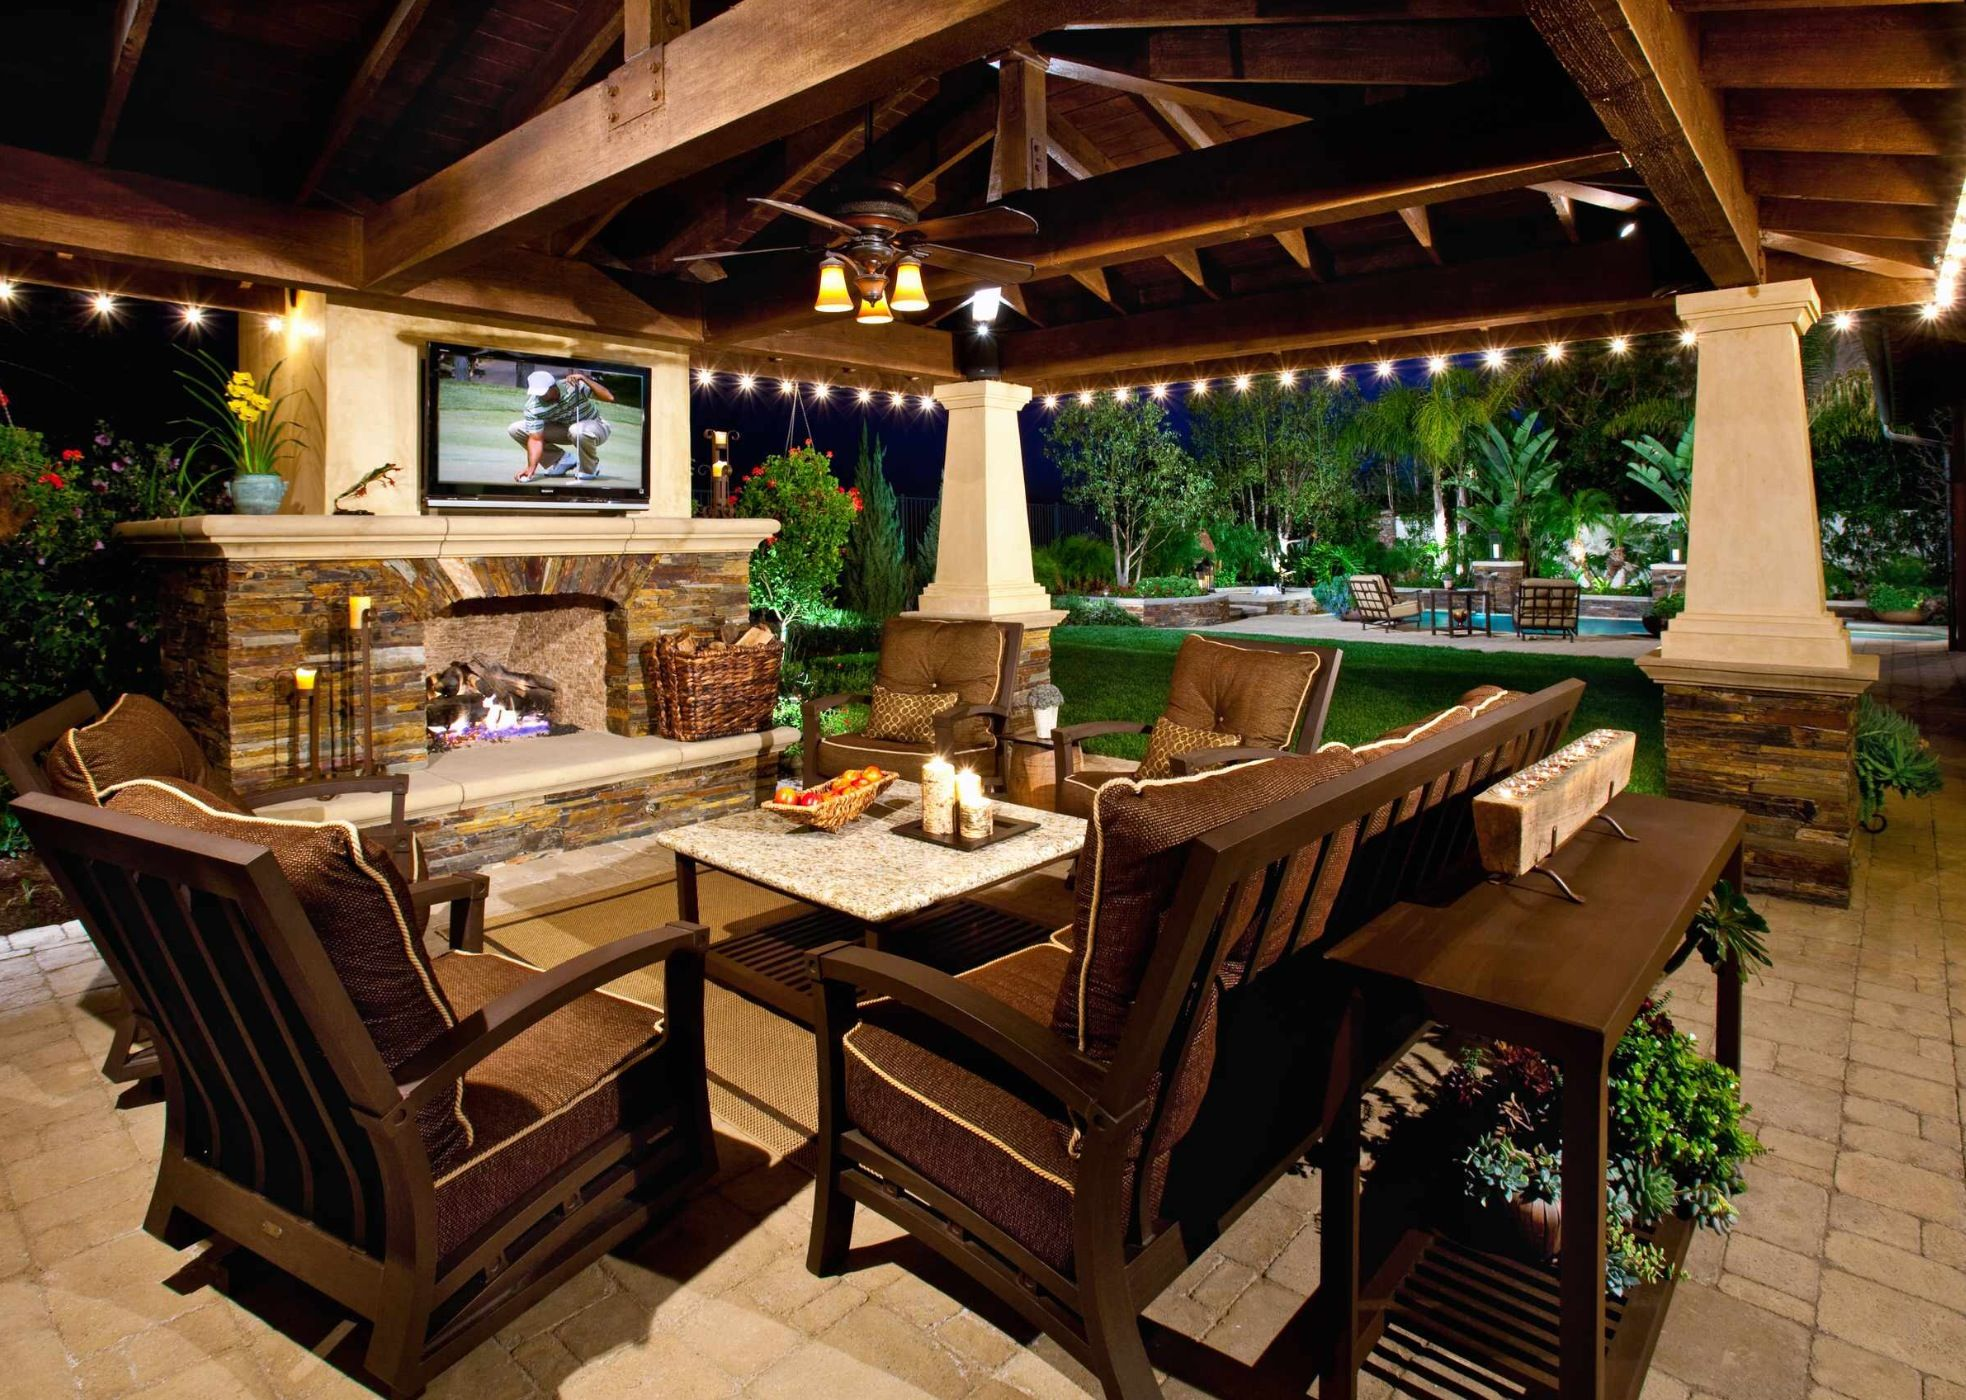 Poolside fireside just pick a side poolside outdoorspaces